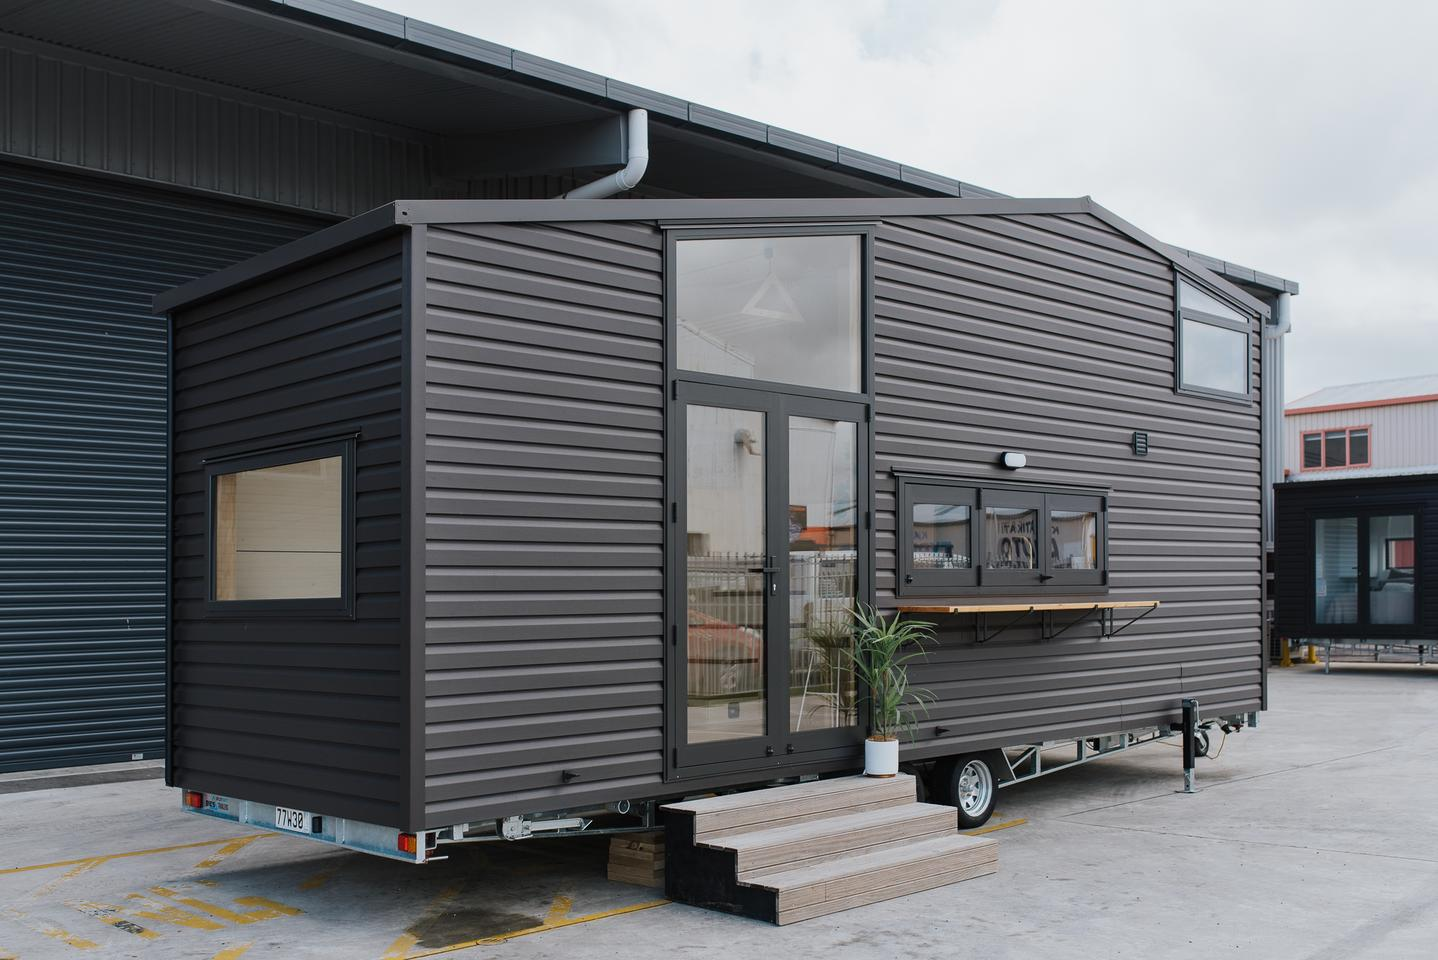 The Hilltop Tiny House features a steel frame and is finished in vinyl cladding